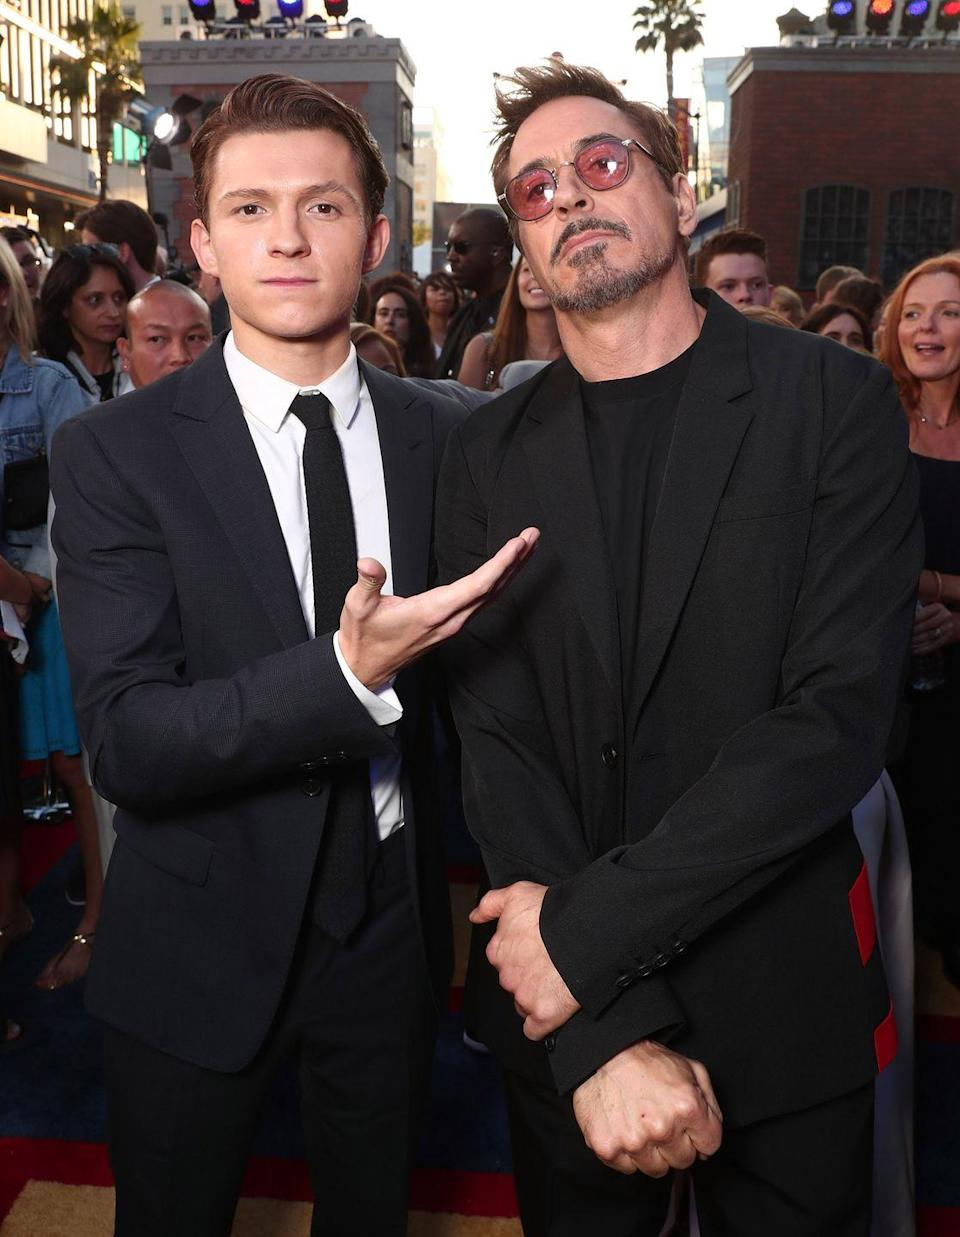 <p>Tom Holland and Robert Downey Jr. attend the premiere of <em>Spider-Man: Homecoming</em> at TCL Chinese Theatre on June 28, 2017 in Hollywood, California.</p>